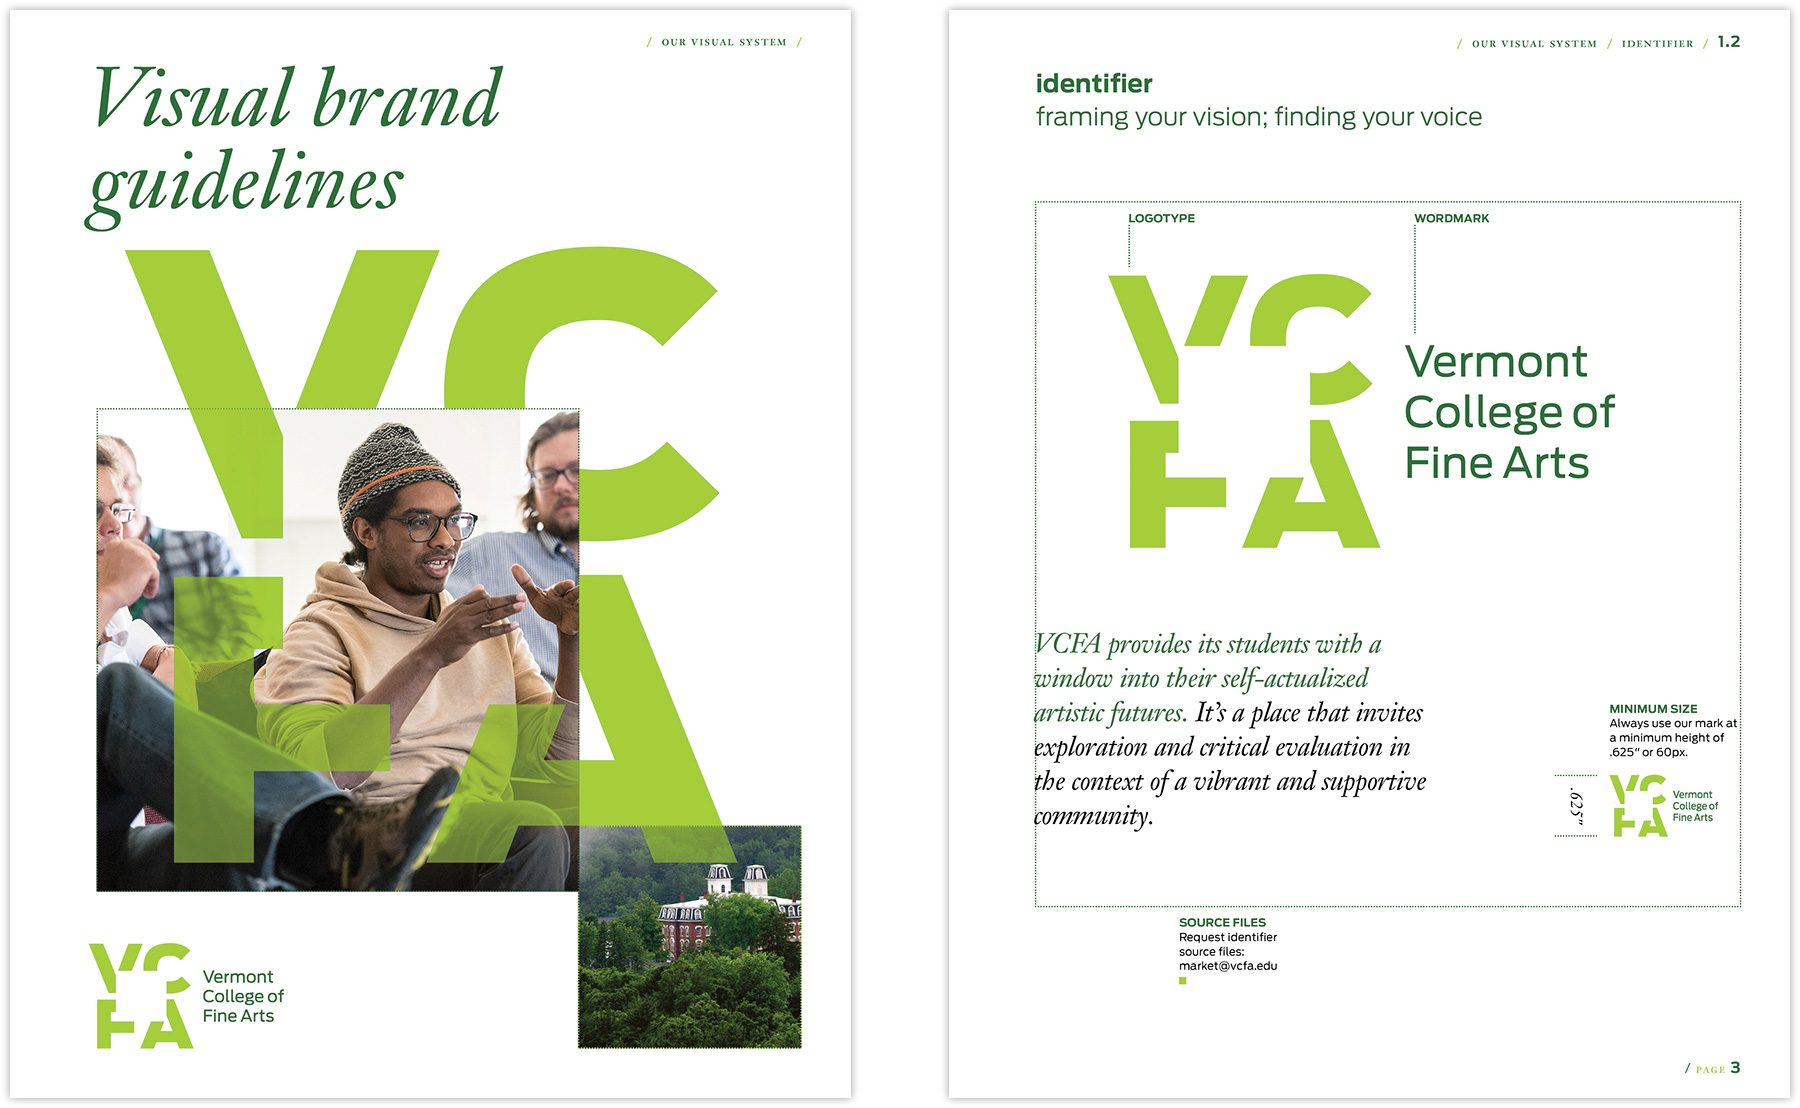 Visual brand guidelines spread